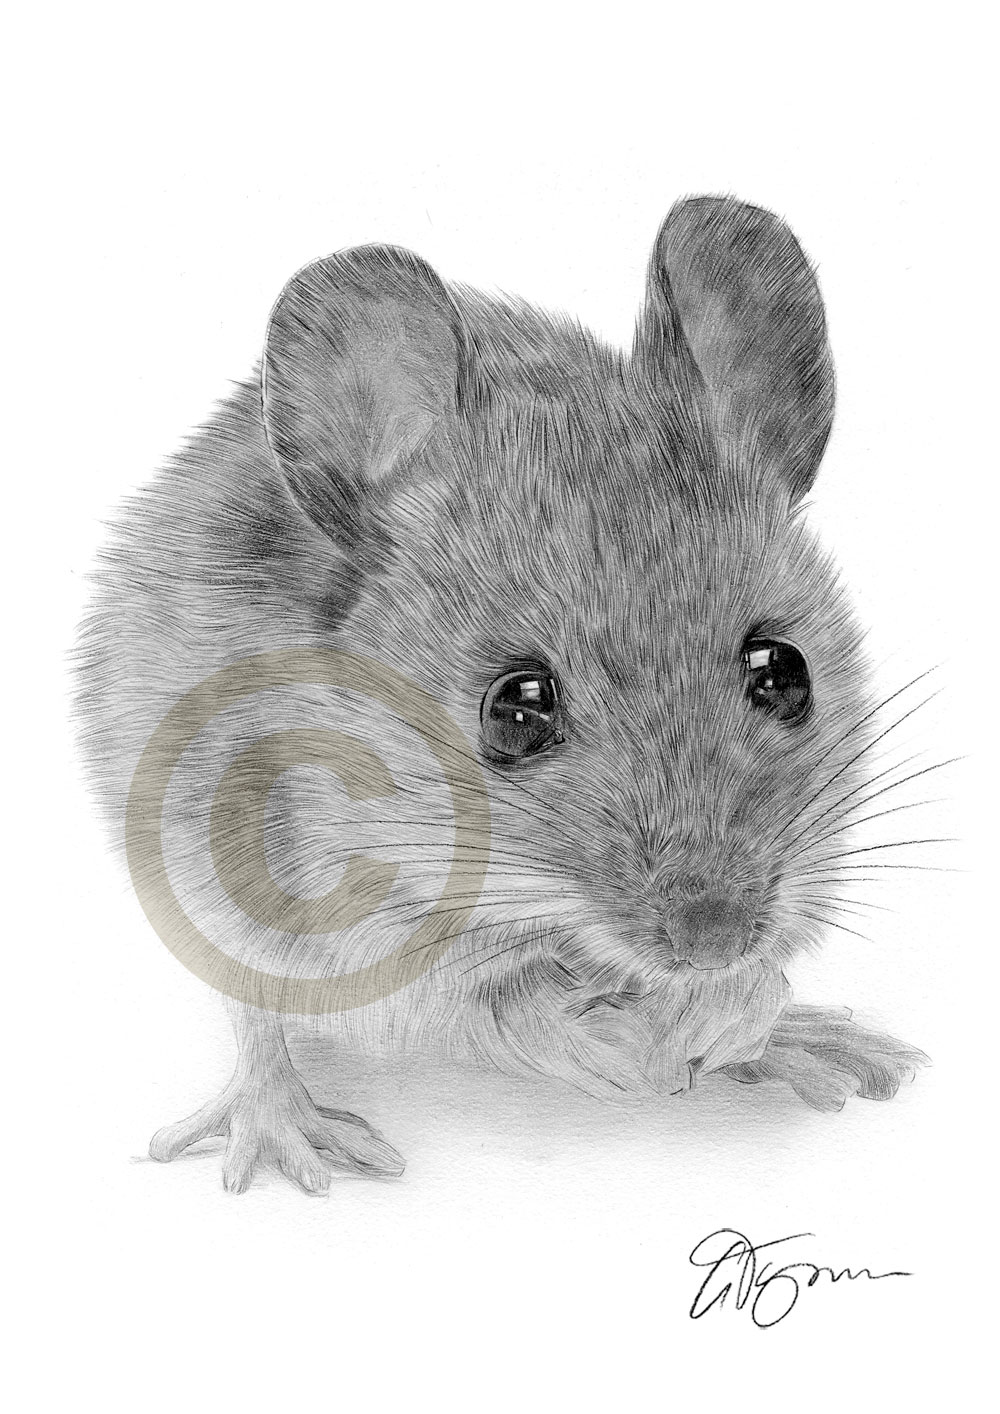 Drawn rodent pencil drawing Search AnimalsAnimal realistic mouse DrawingsPencil